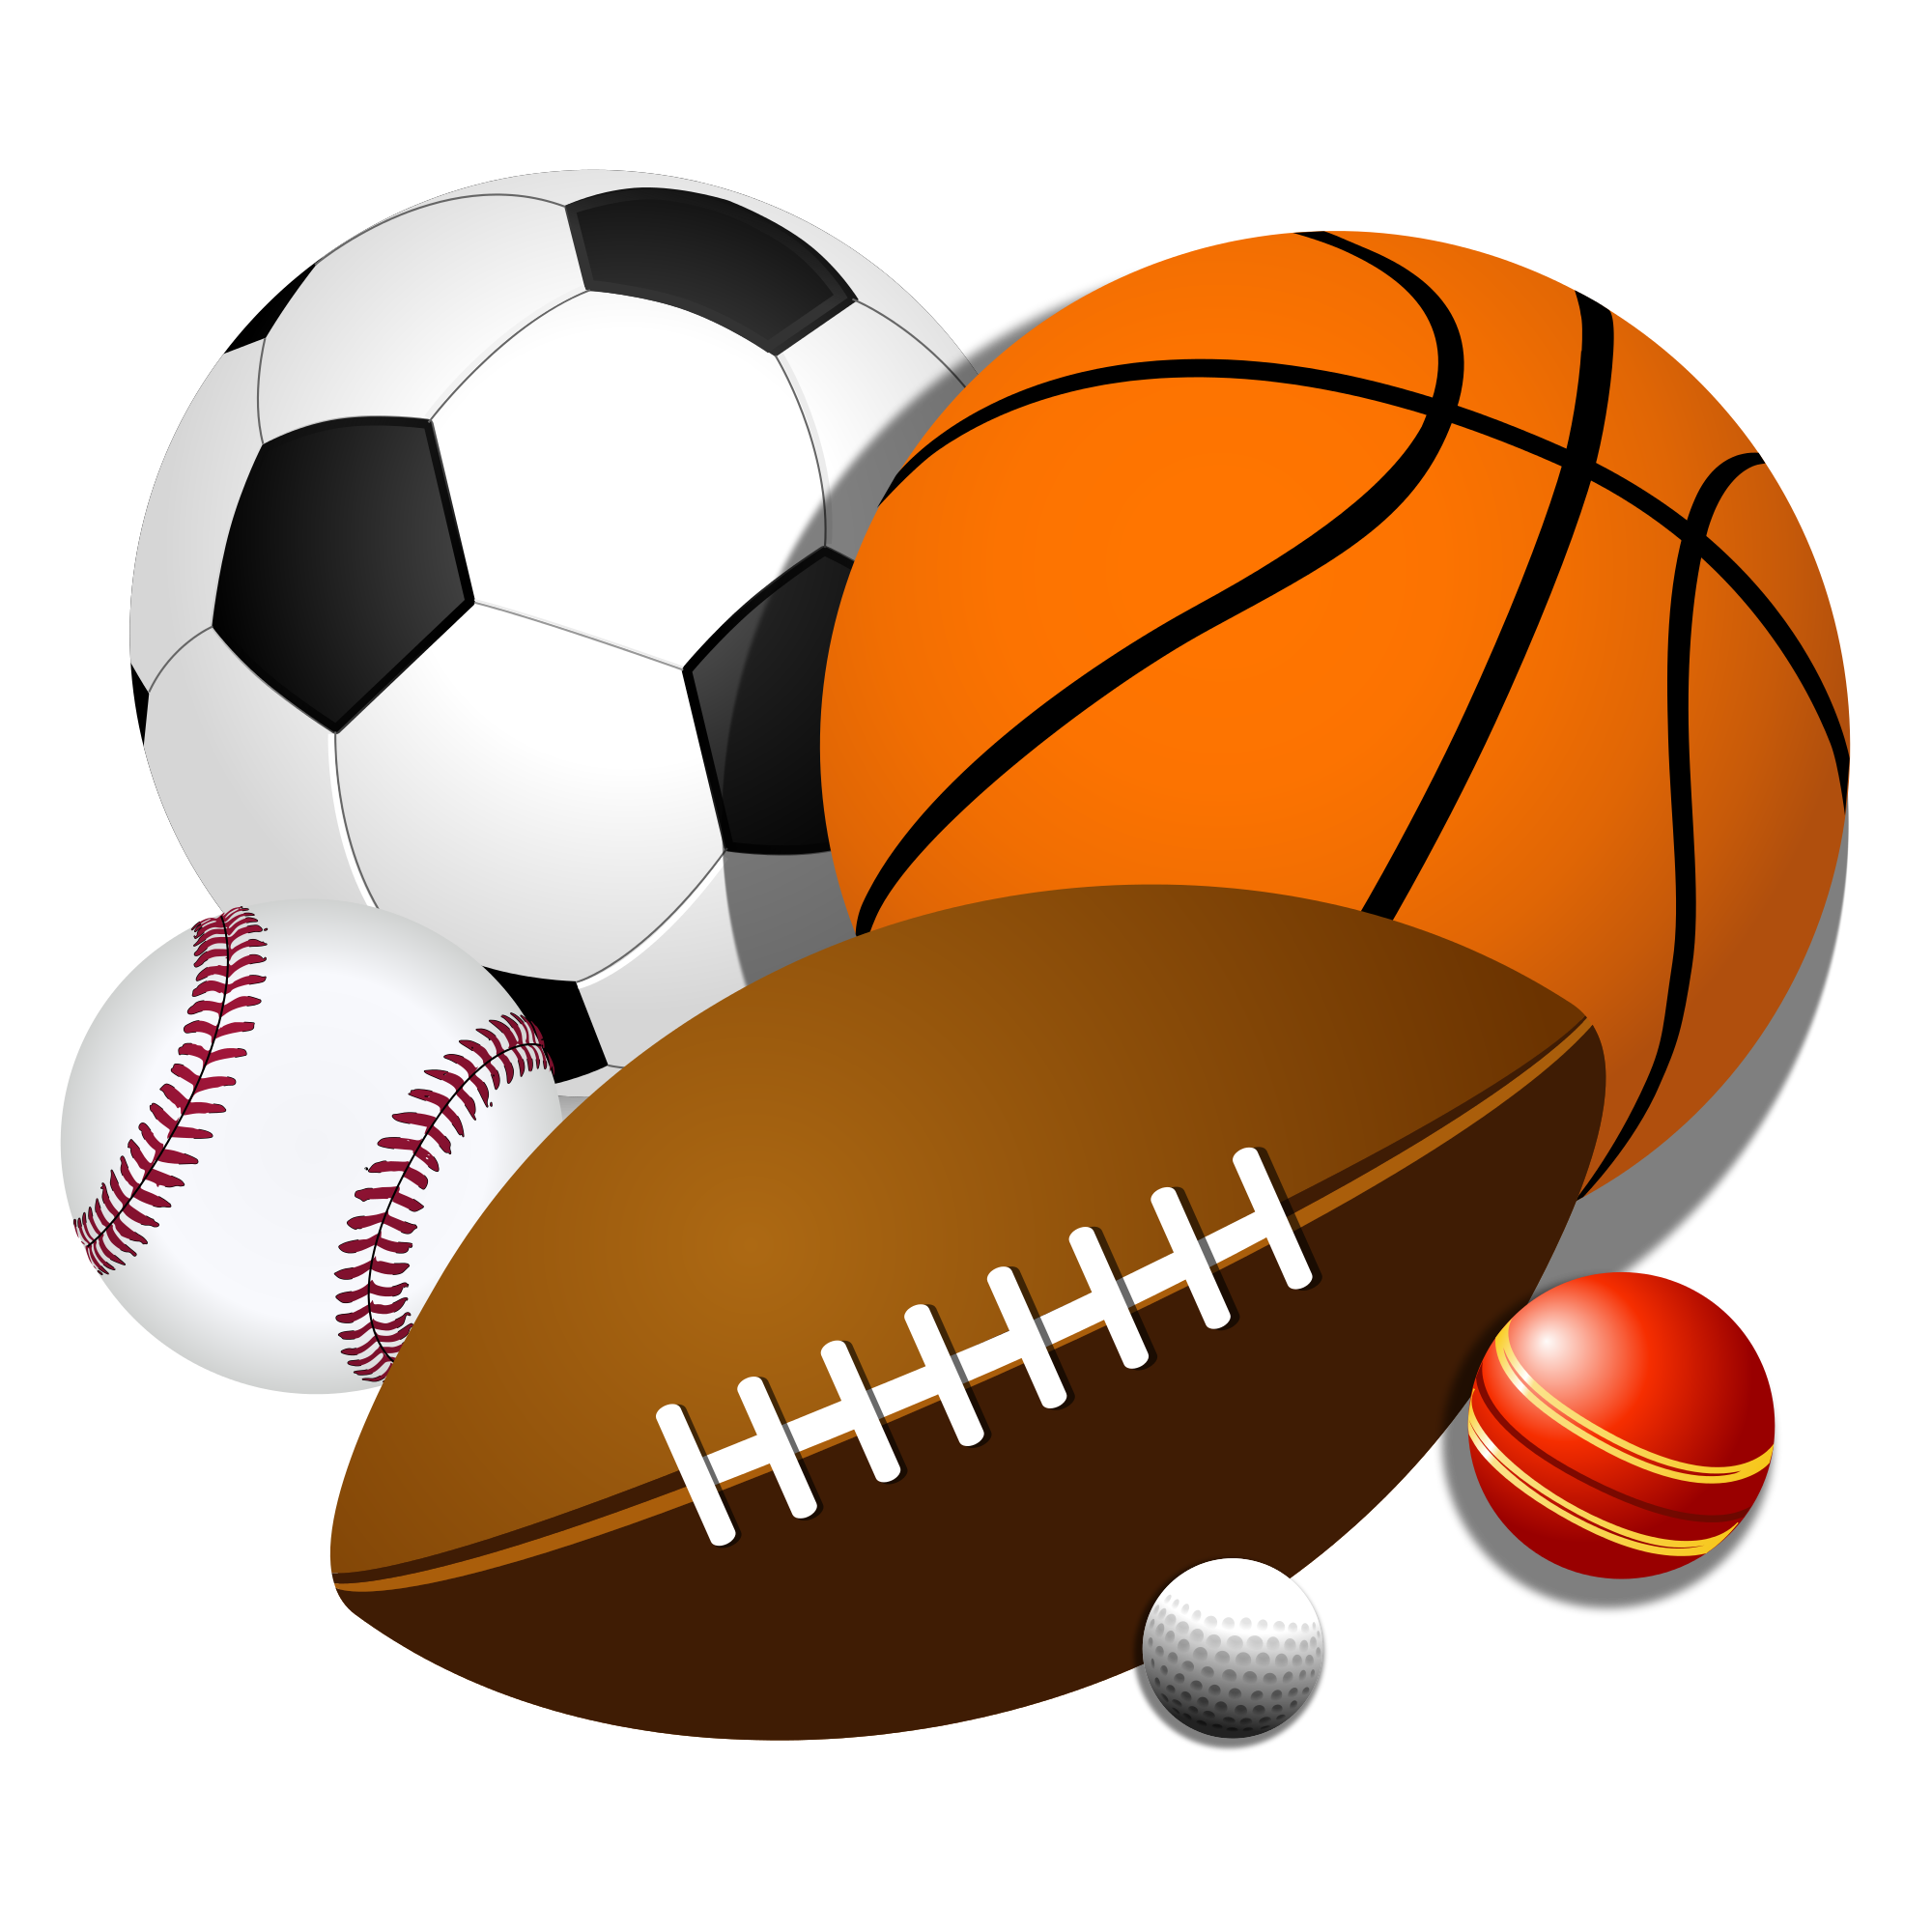 Club clipart sport wallpaper. Rugby ball real football